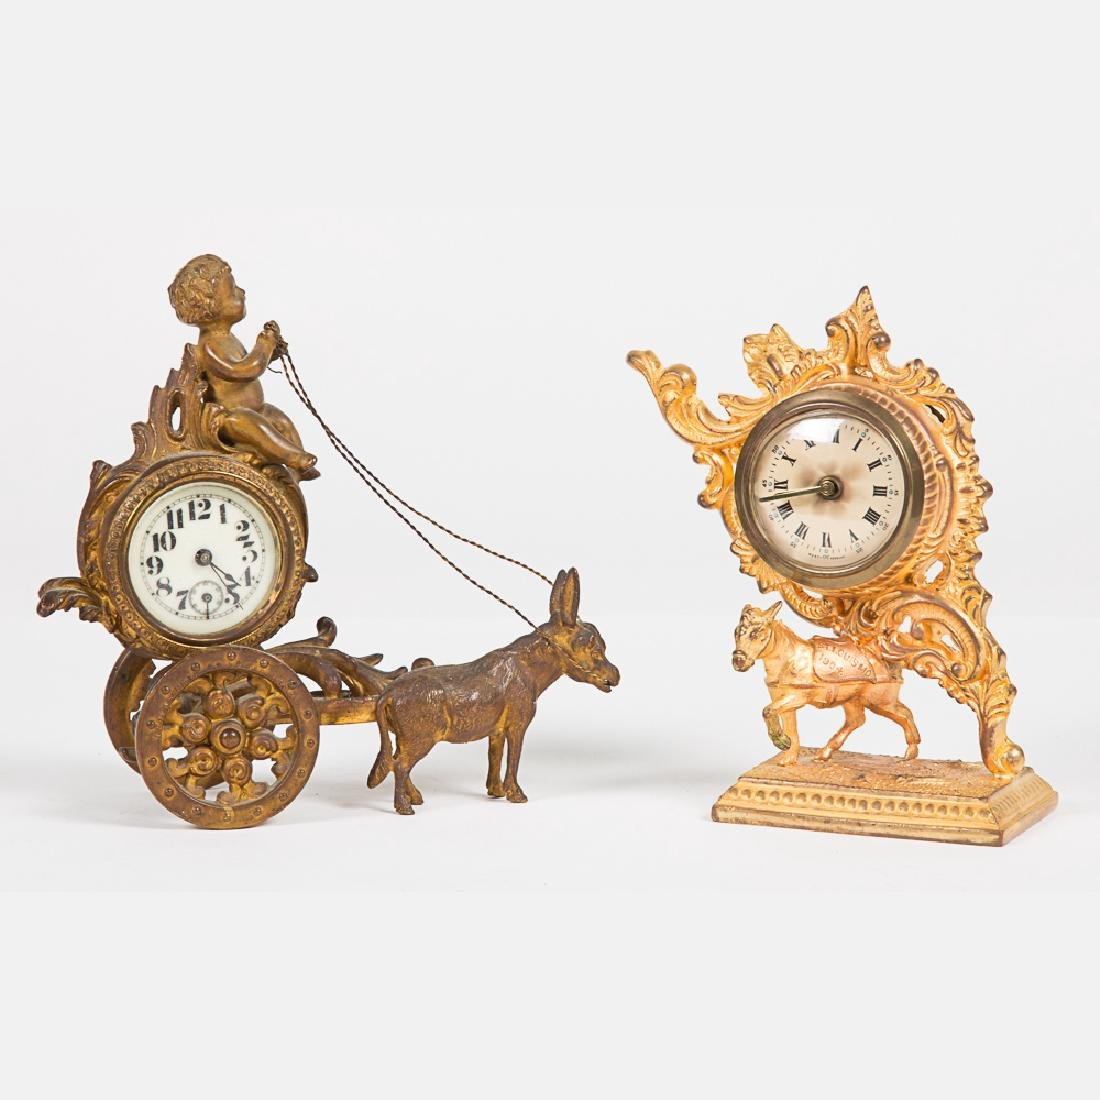 A West Germany Gilt Metal Clock from the Louisiana